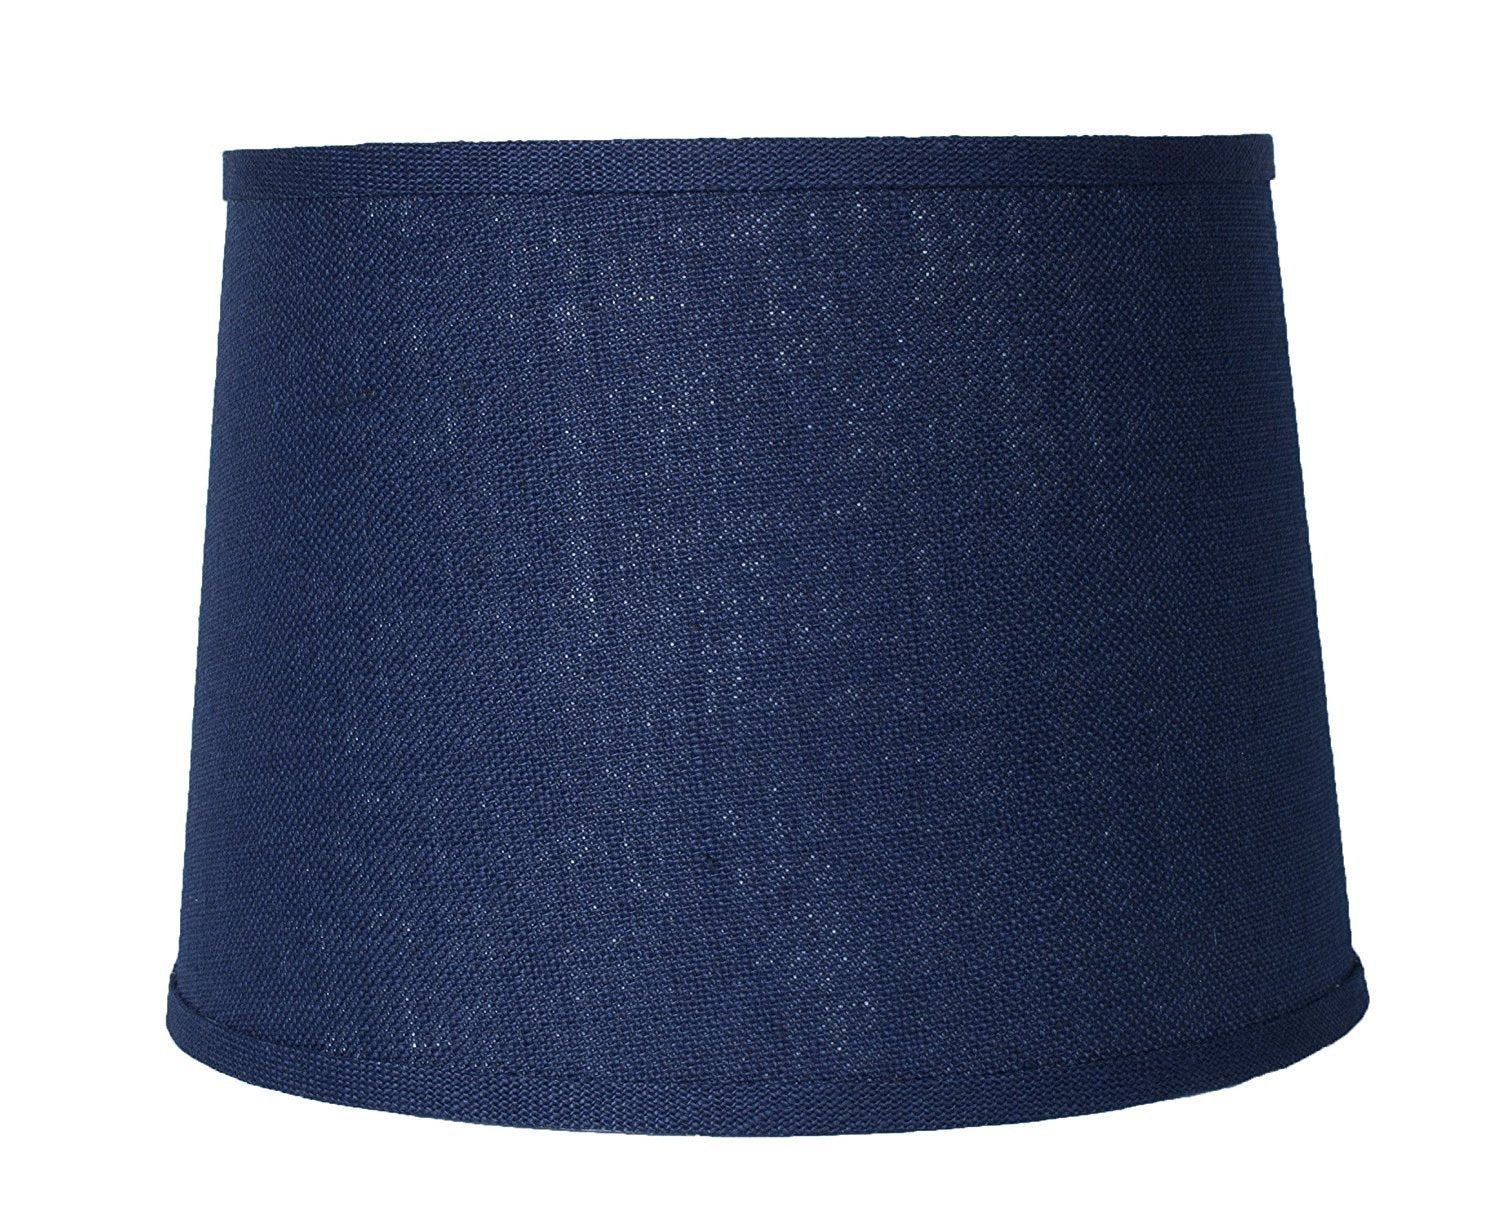 Blue Burlap Drum Lampshade, Spider Fitter